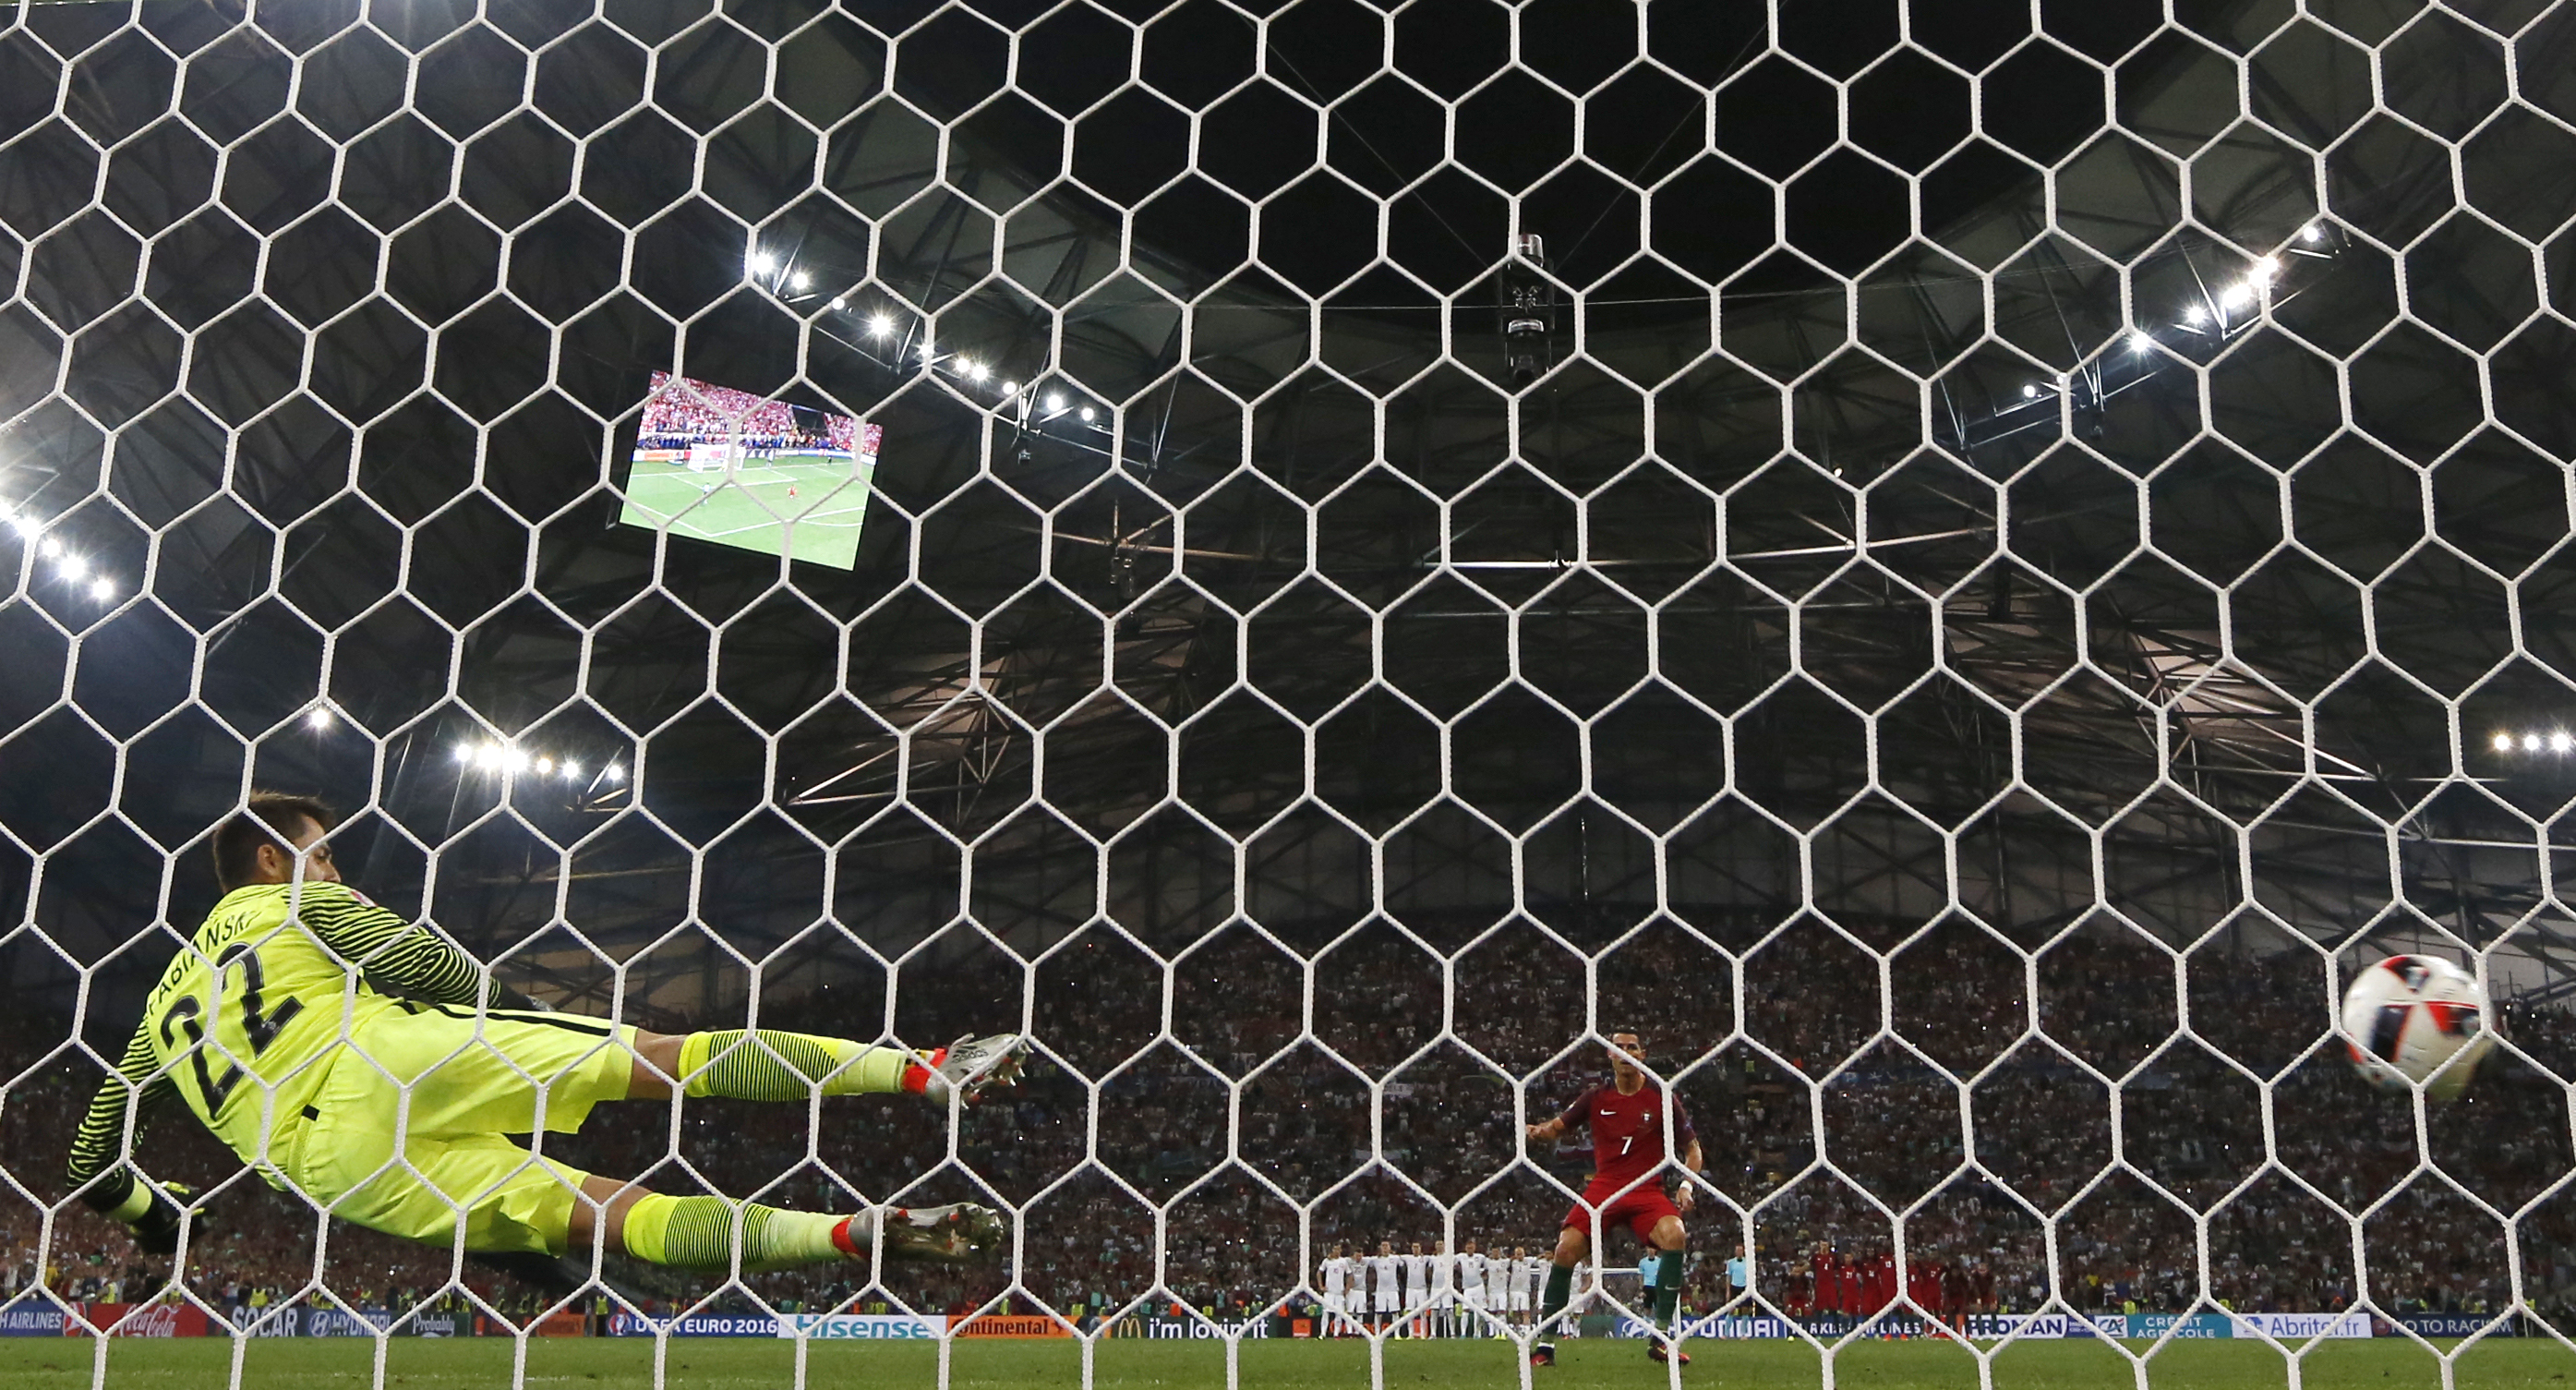 Portugal's forward Cristiano Ronaldo (R) scores the first in a penalty shoot-out during the Euro 2016 quarter-final football match between Poland and Portugal at the Stade Velodrome in Marseille on June 30, 2016. / AFP PHOTO / Valery HACHE